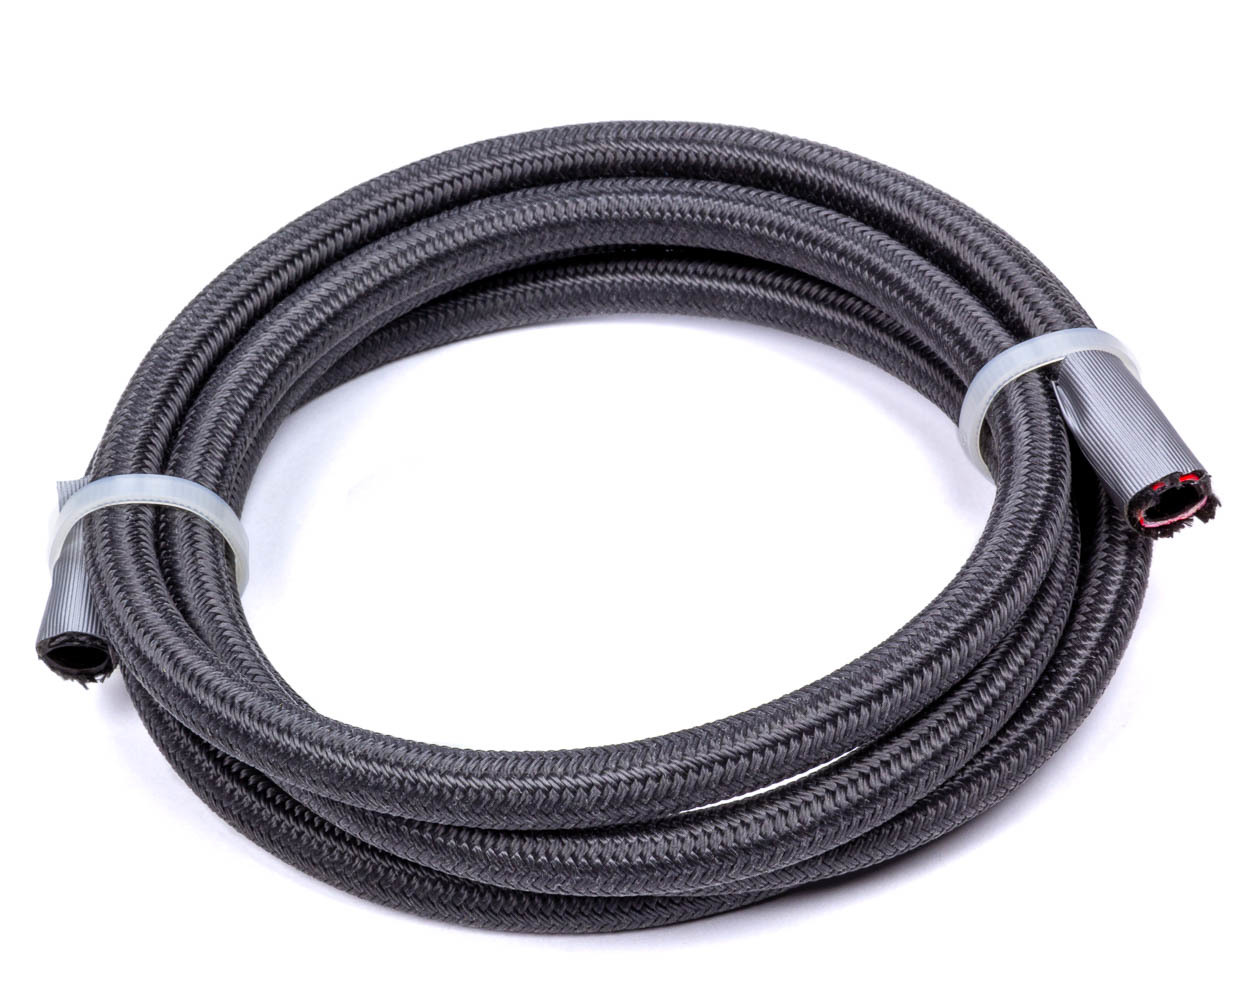 Fragola 2700304 Hose, Race-Rite, 4 AN, 3 ft, Braided Fire Retardant Fabric, PTFE, Black, Each